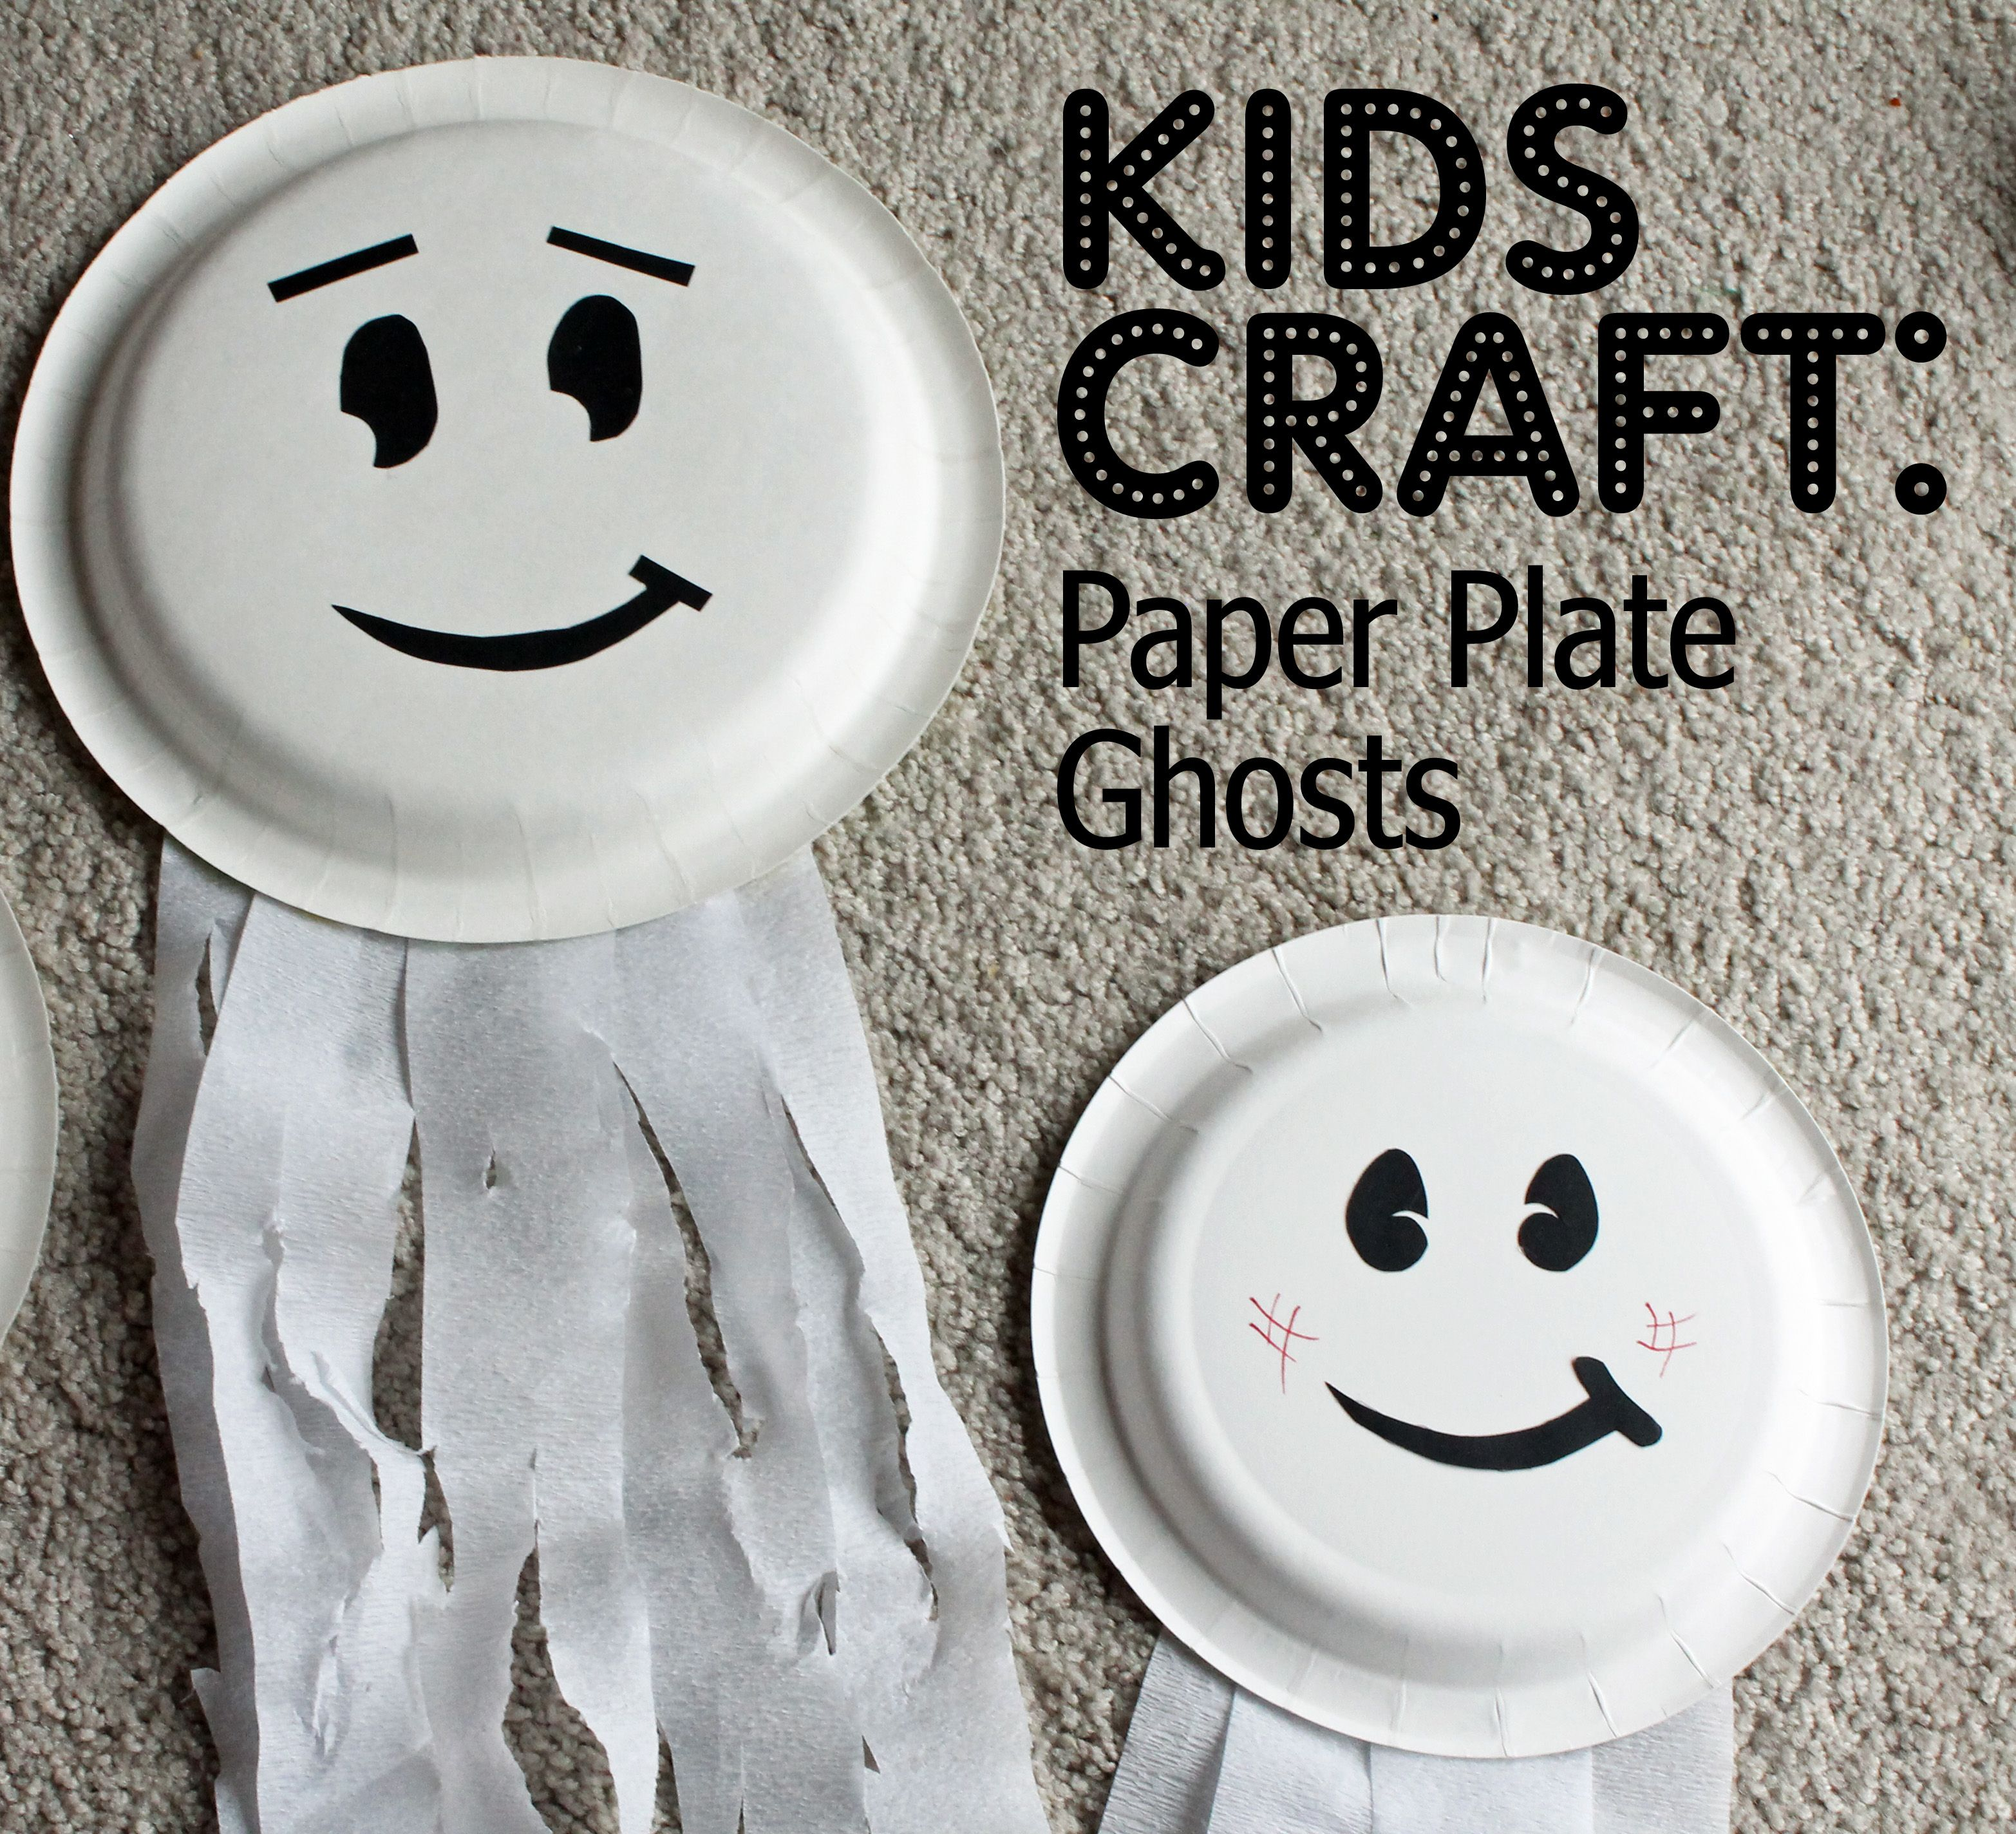 Paper Plate Ghosts - Who Arted? & Paper Plate Ghosts - Who Arted? | Trick Or Treat | Pinterest | Craft ...